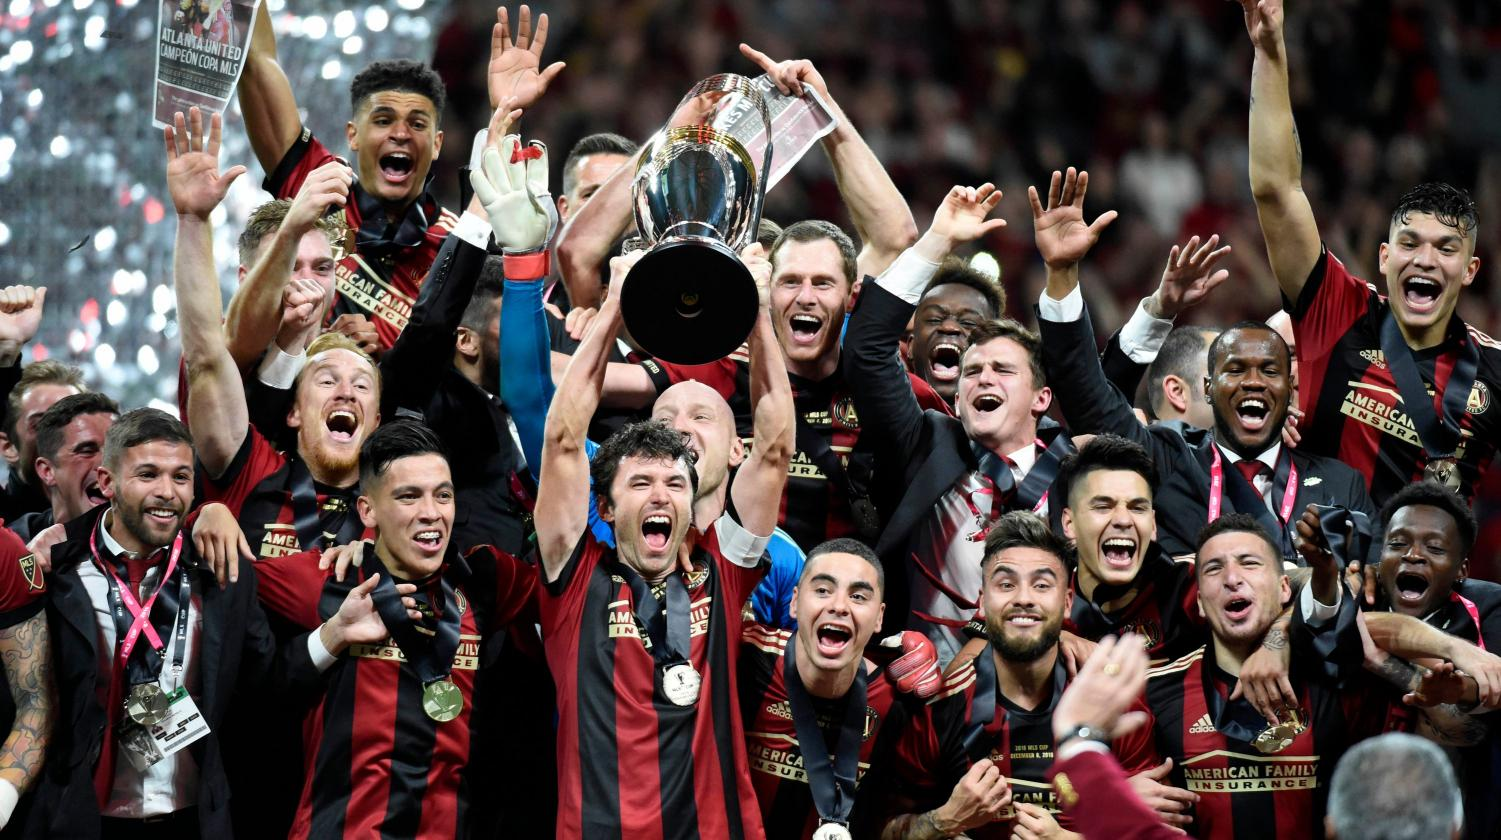 Atlanta United celebrates after defeating the Portland Timbers 2-0, on Dec. 8, to claim the MLS title.